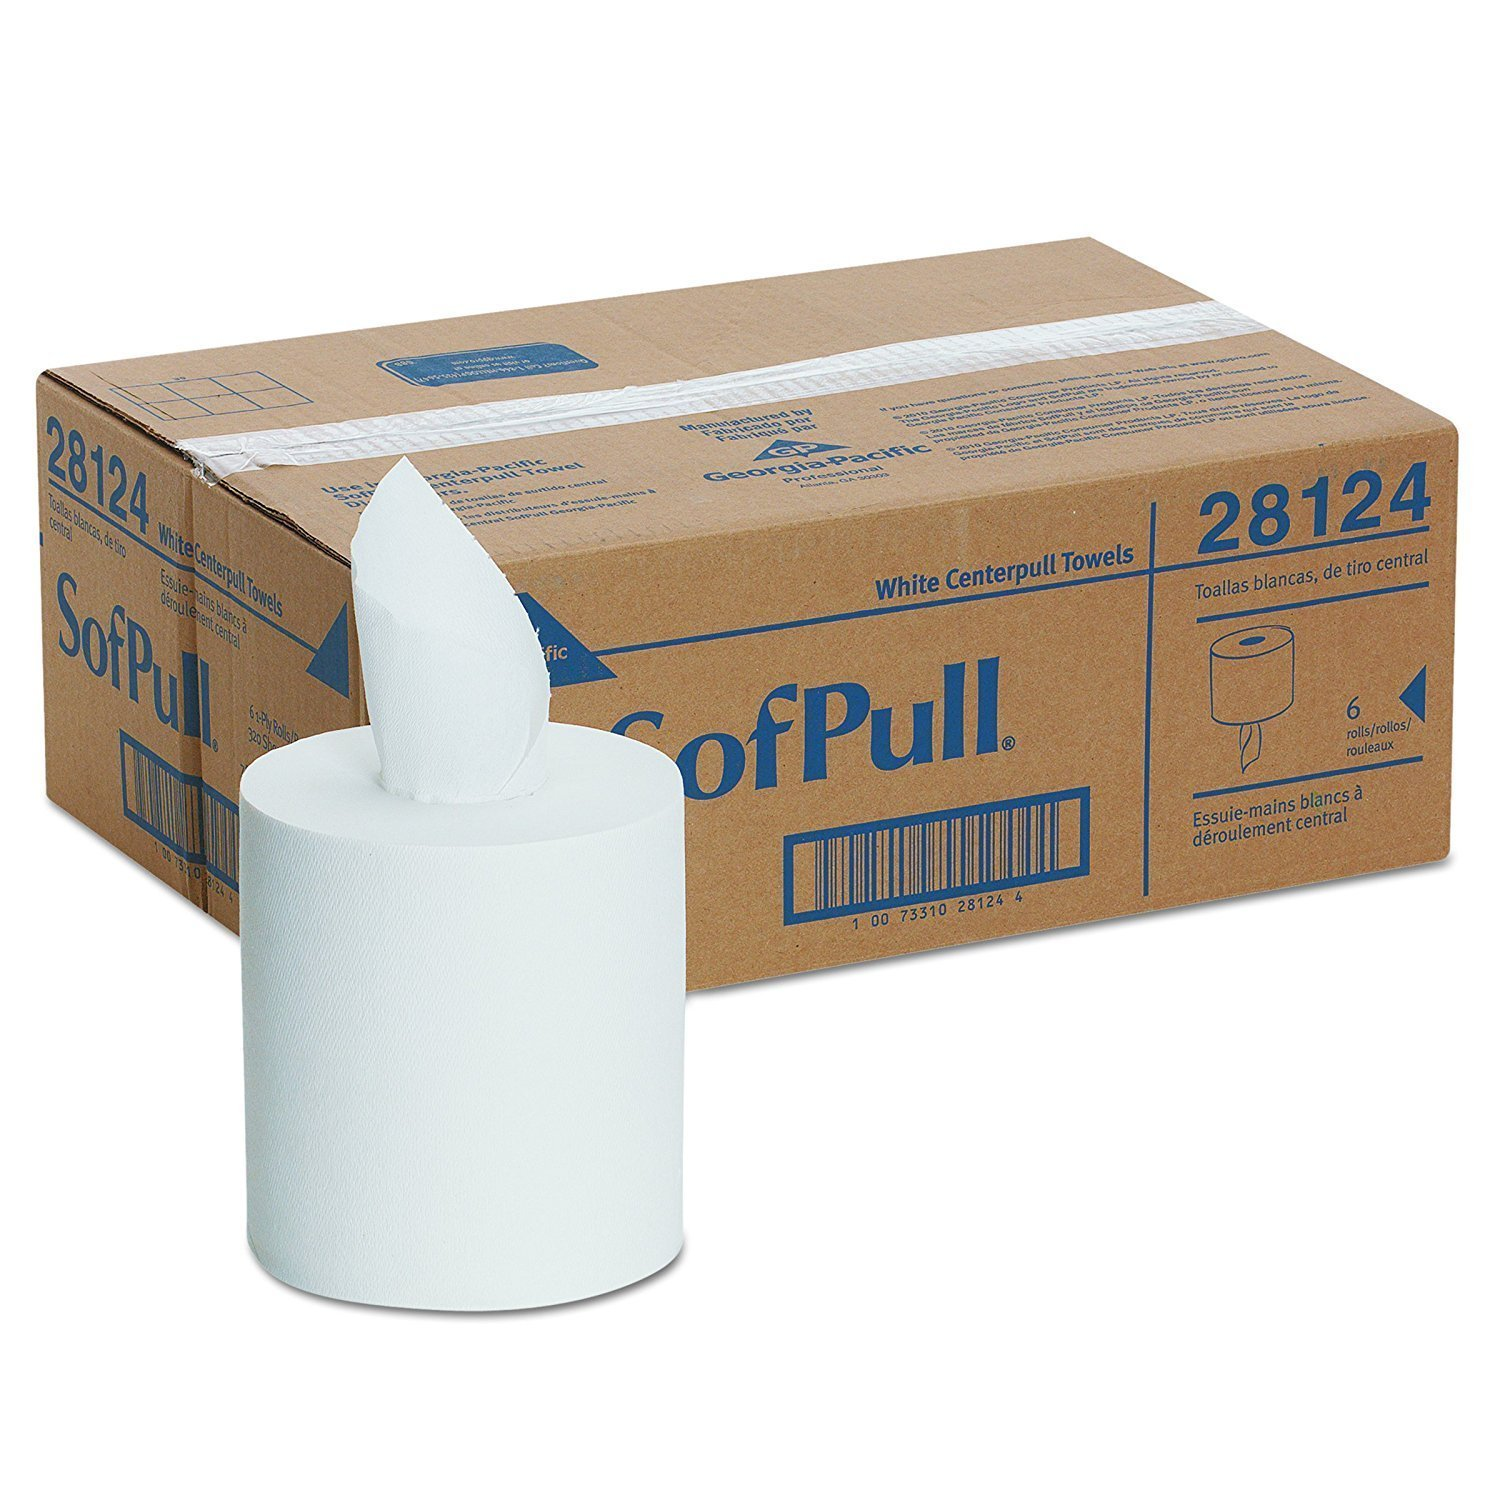 Georgia-Pacific GPC28124 Professional SofPull Center-Pull Perforated Paper Towels,7 4/5x15, White, 320 Per Roll (3 CASES)